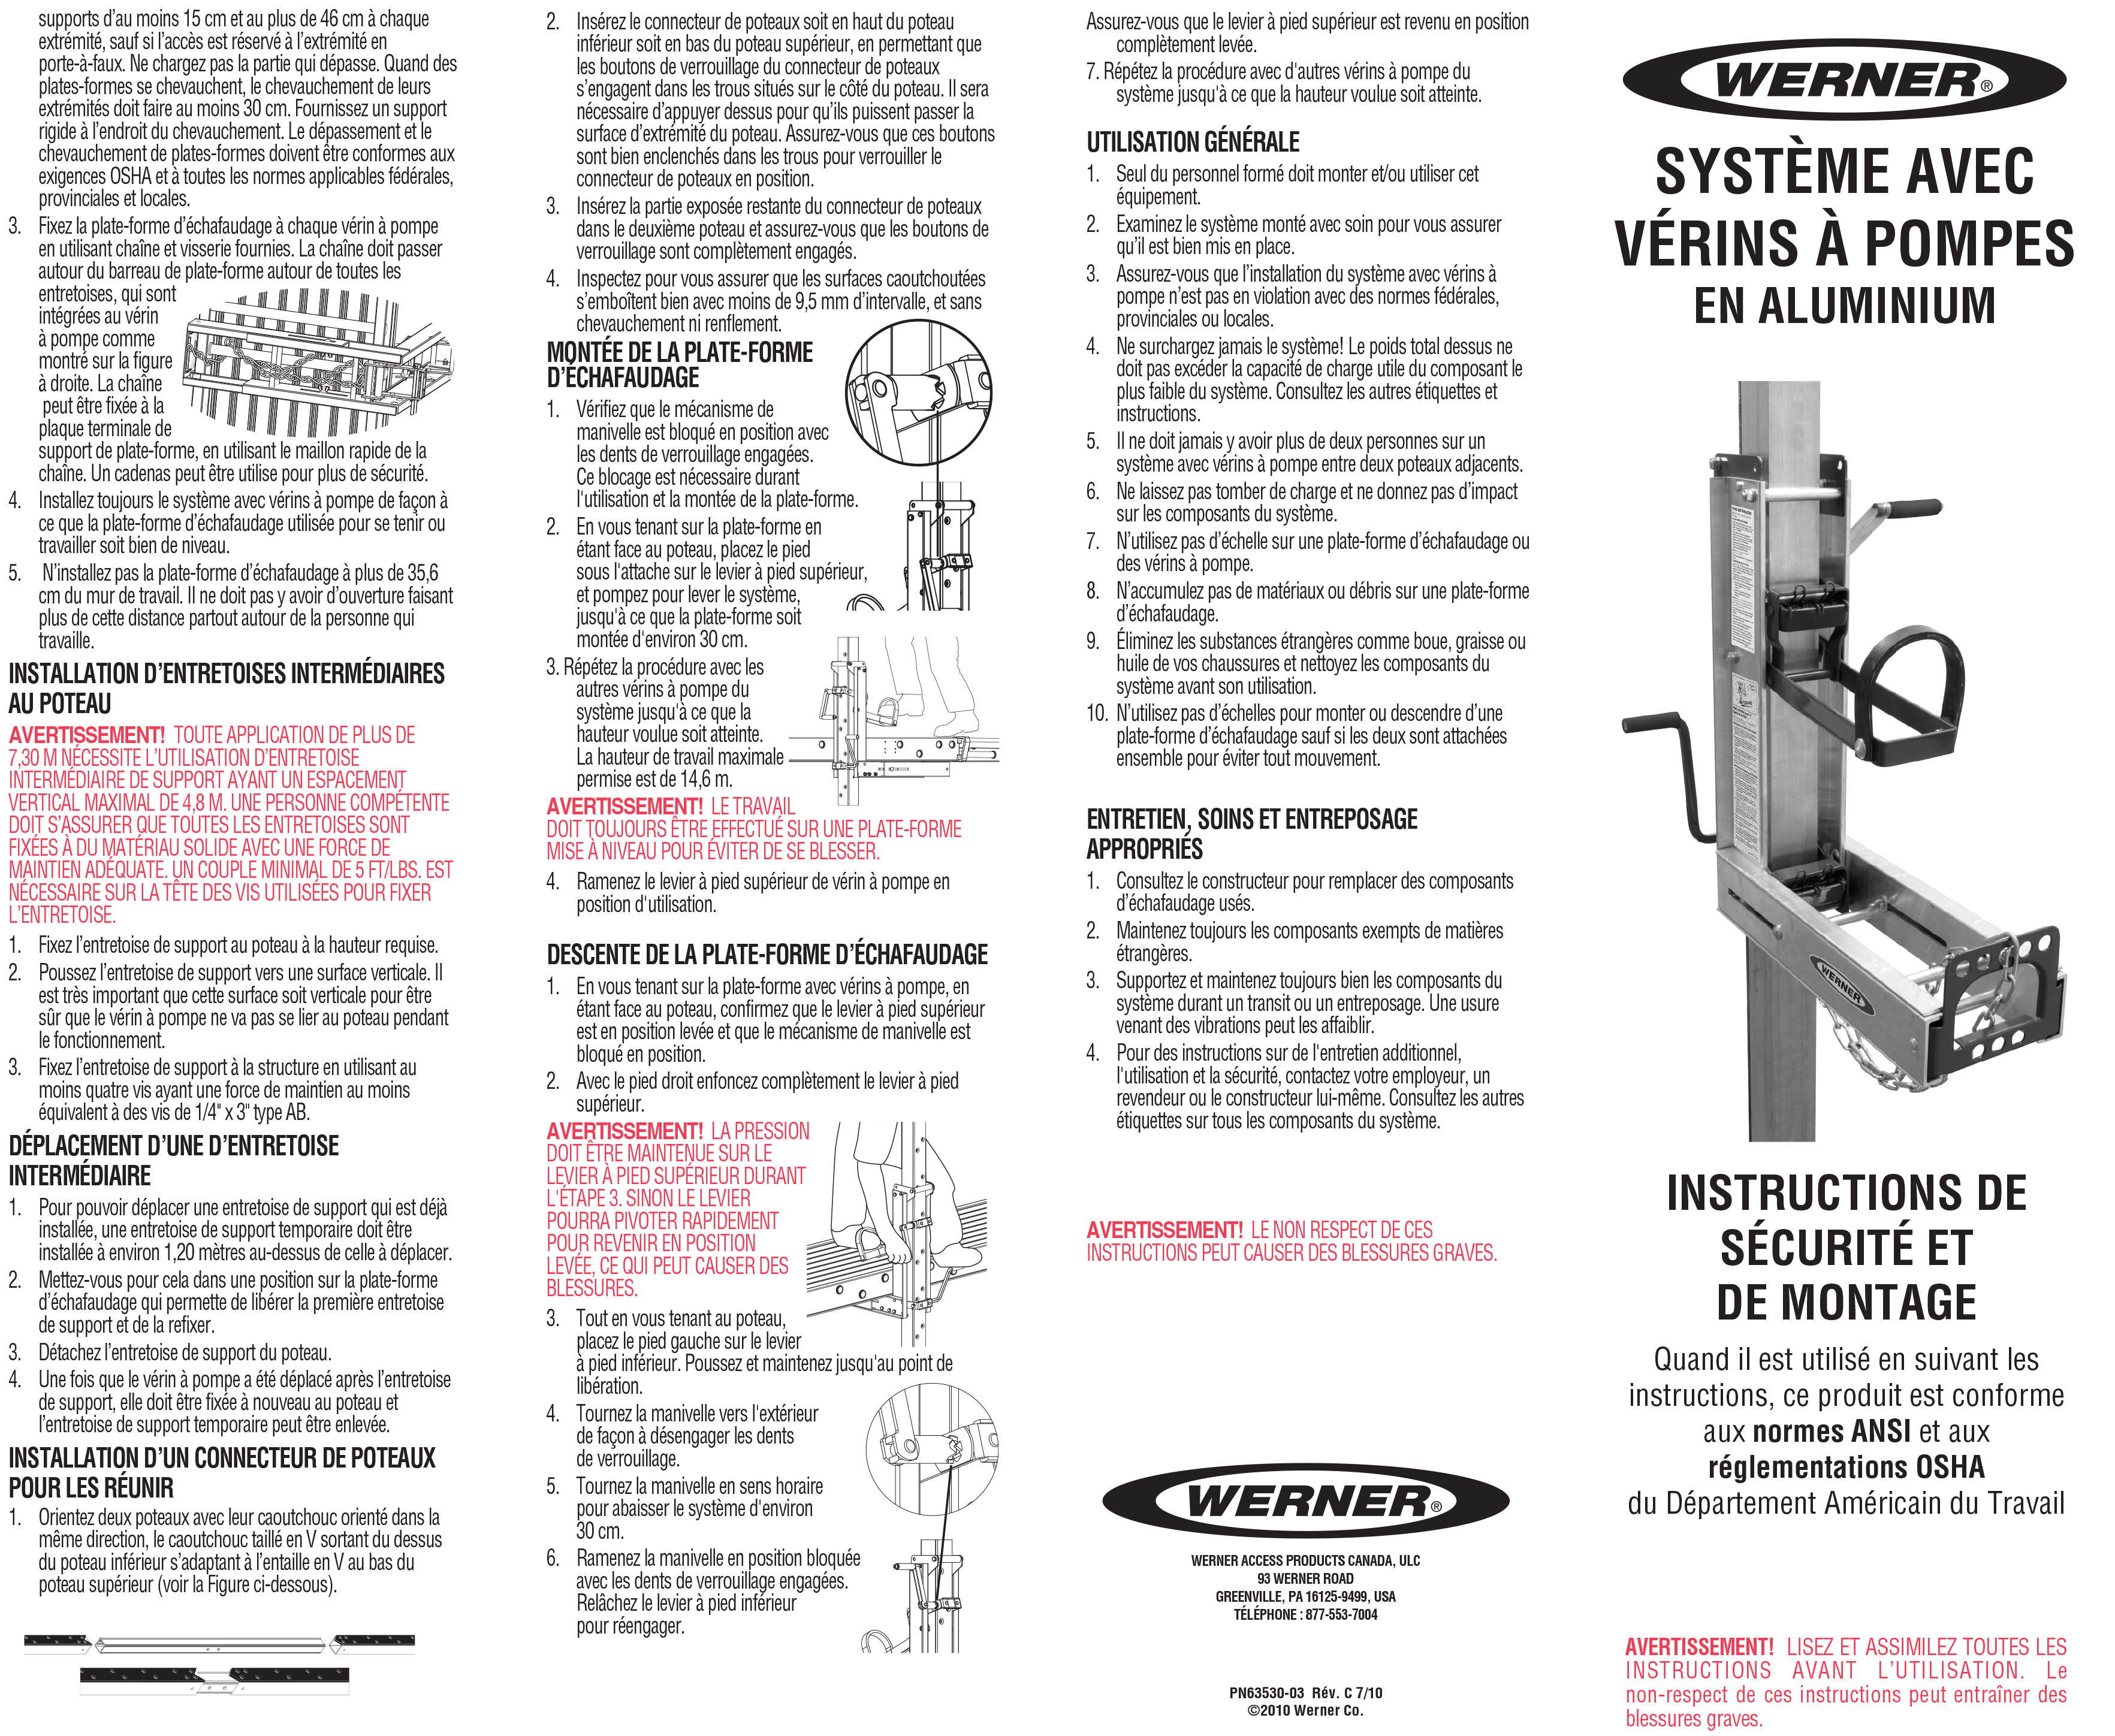 pump-jack-instructions-french-2.jpg